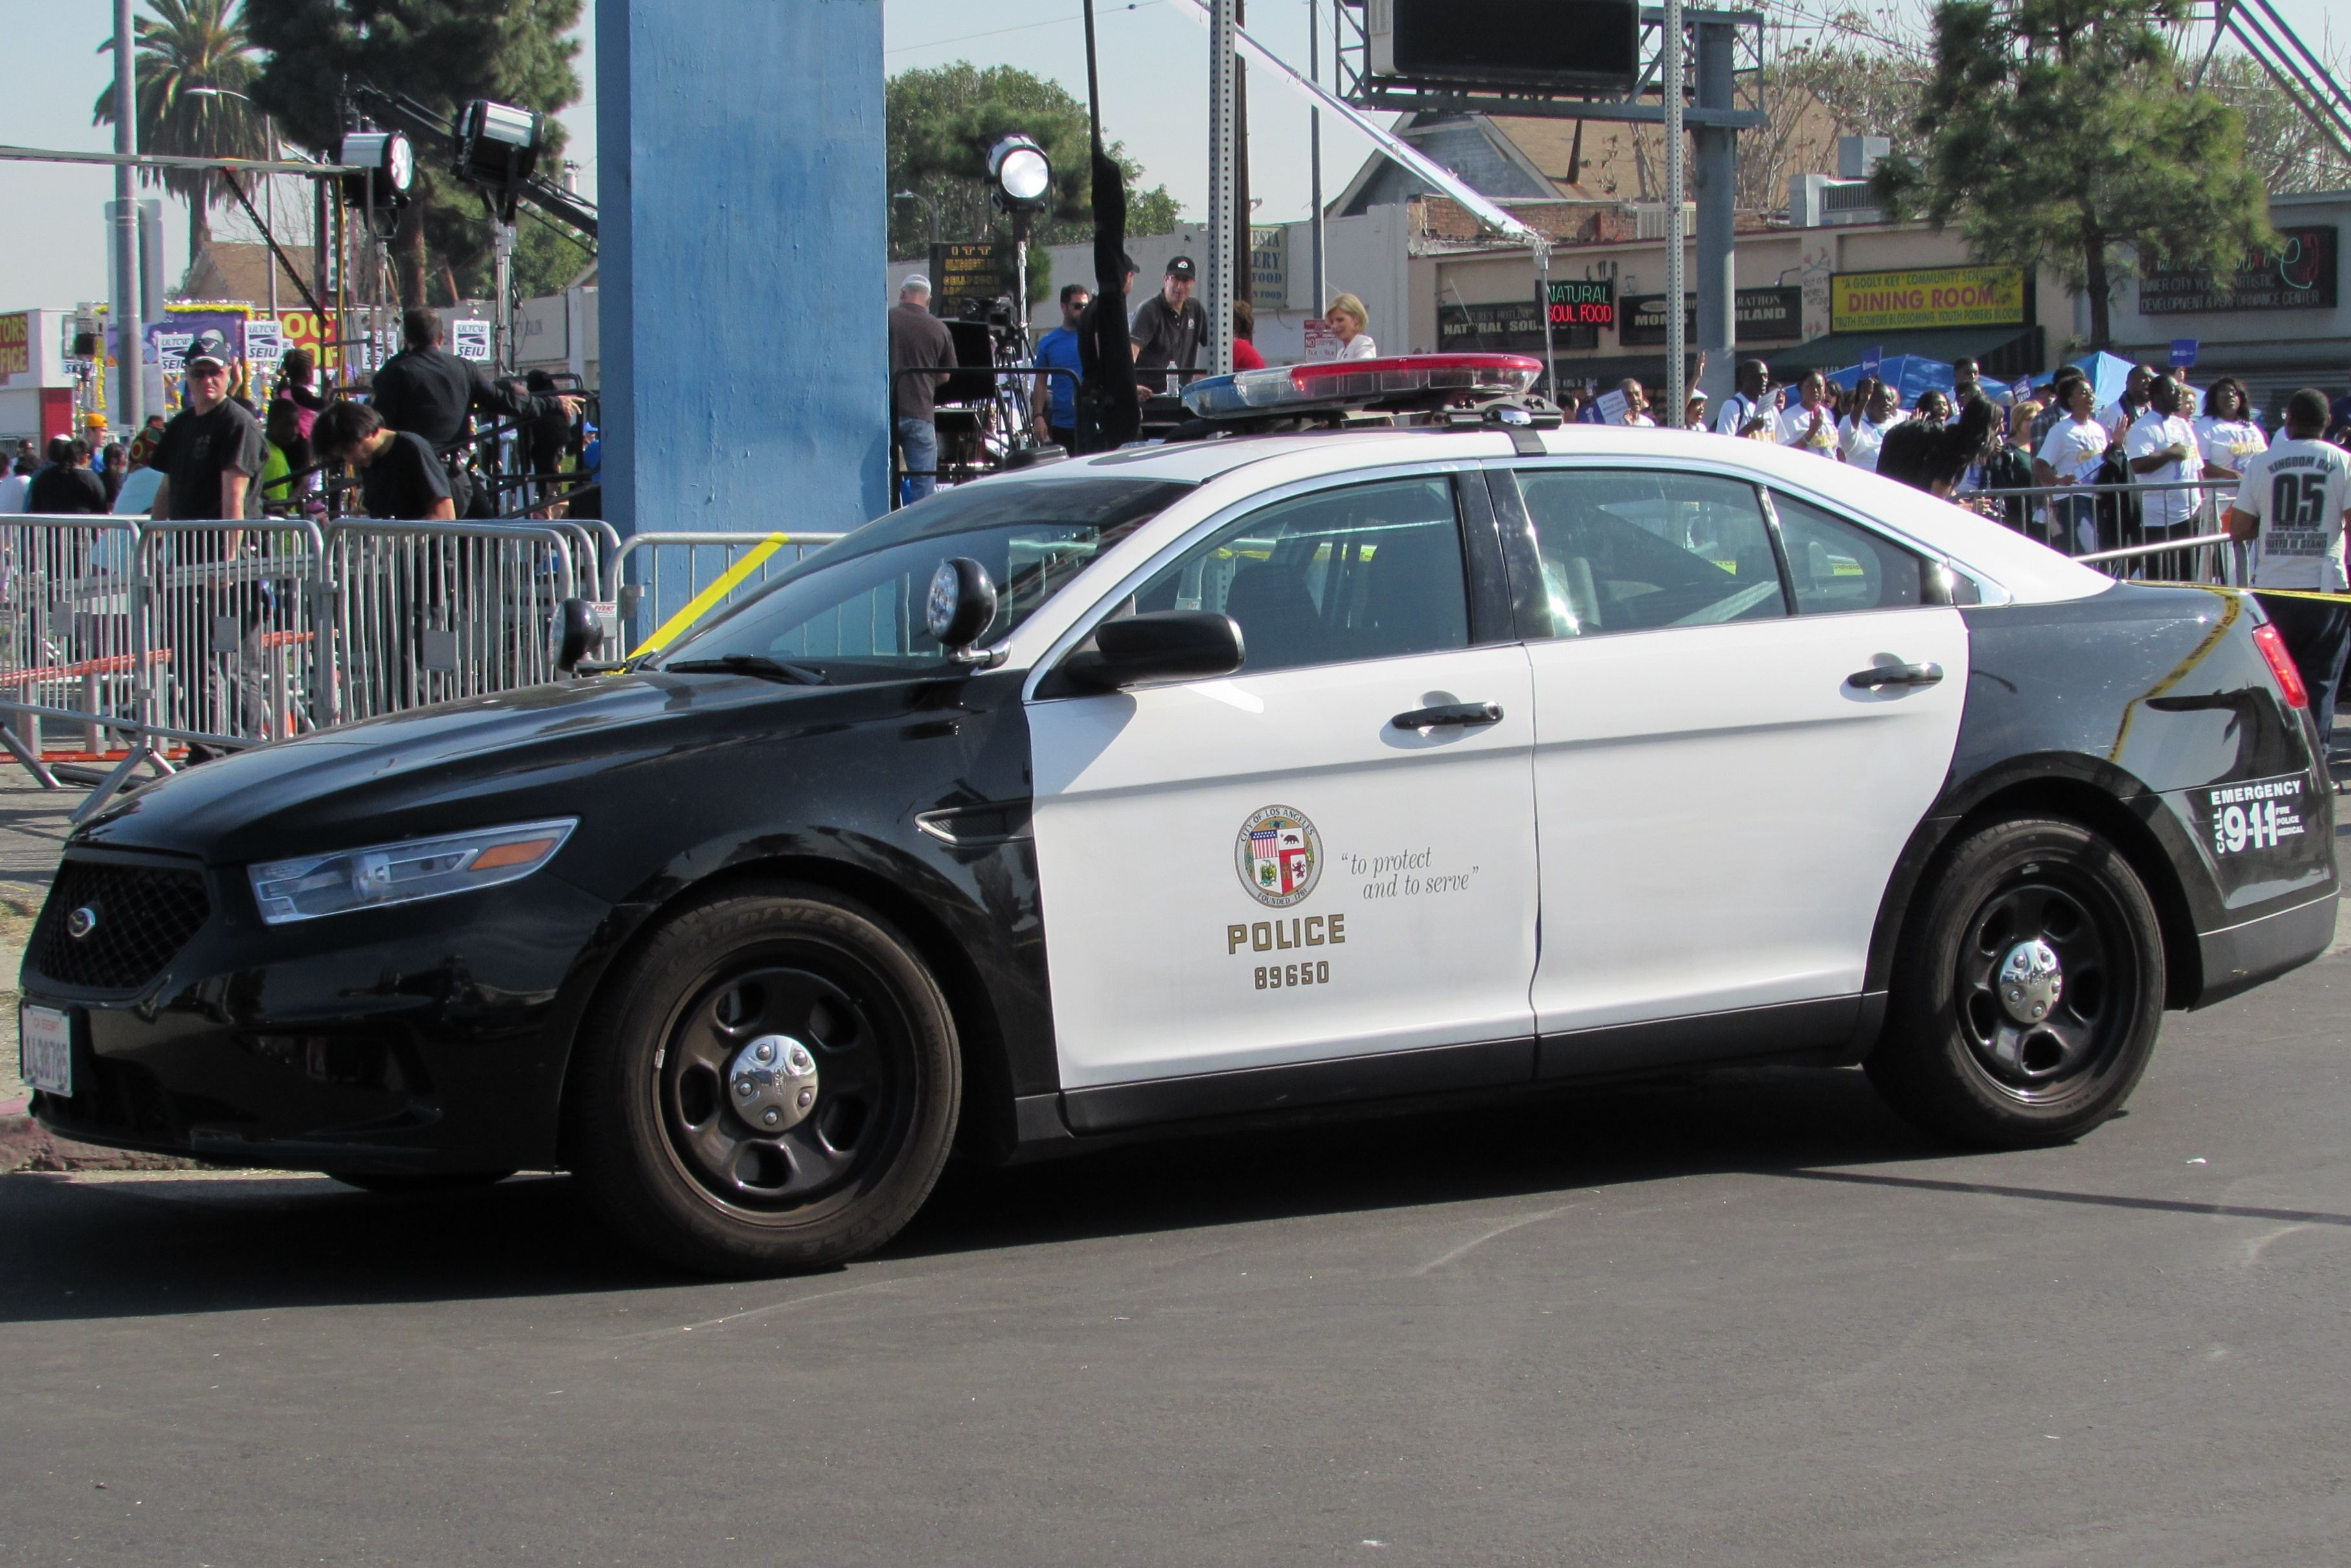 Pin By Juan Crisantos On Los Angeles Police Department Police